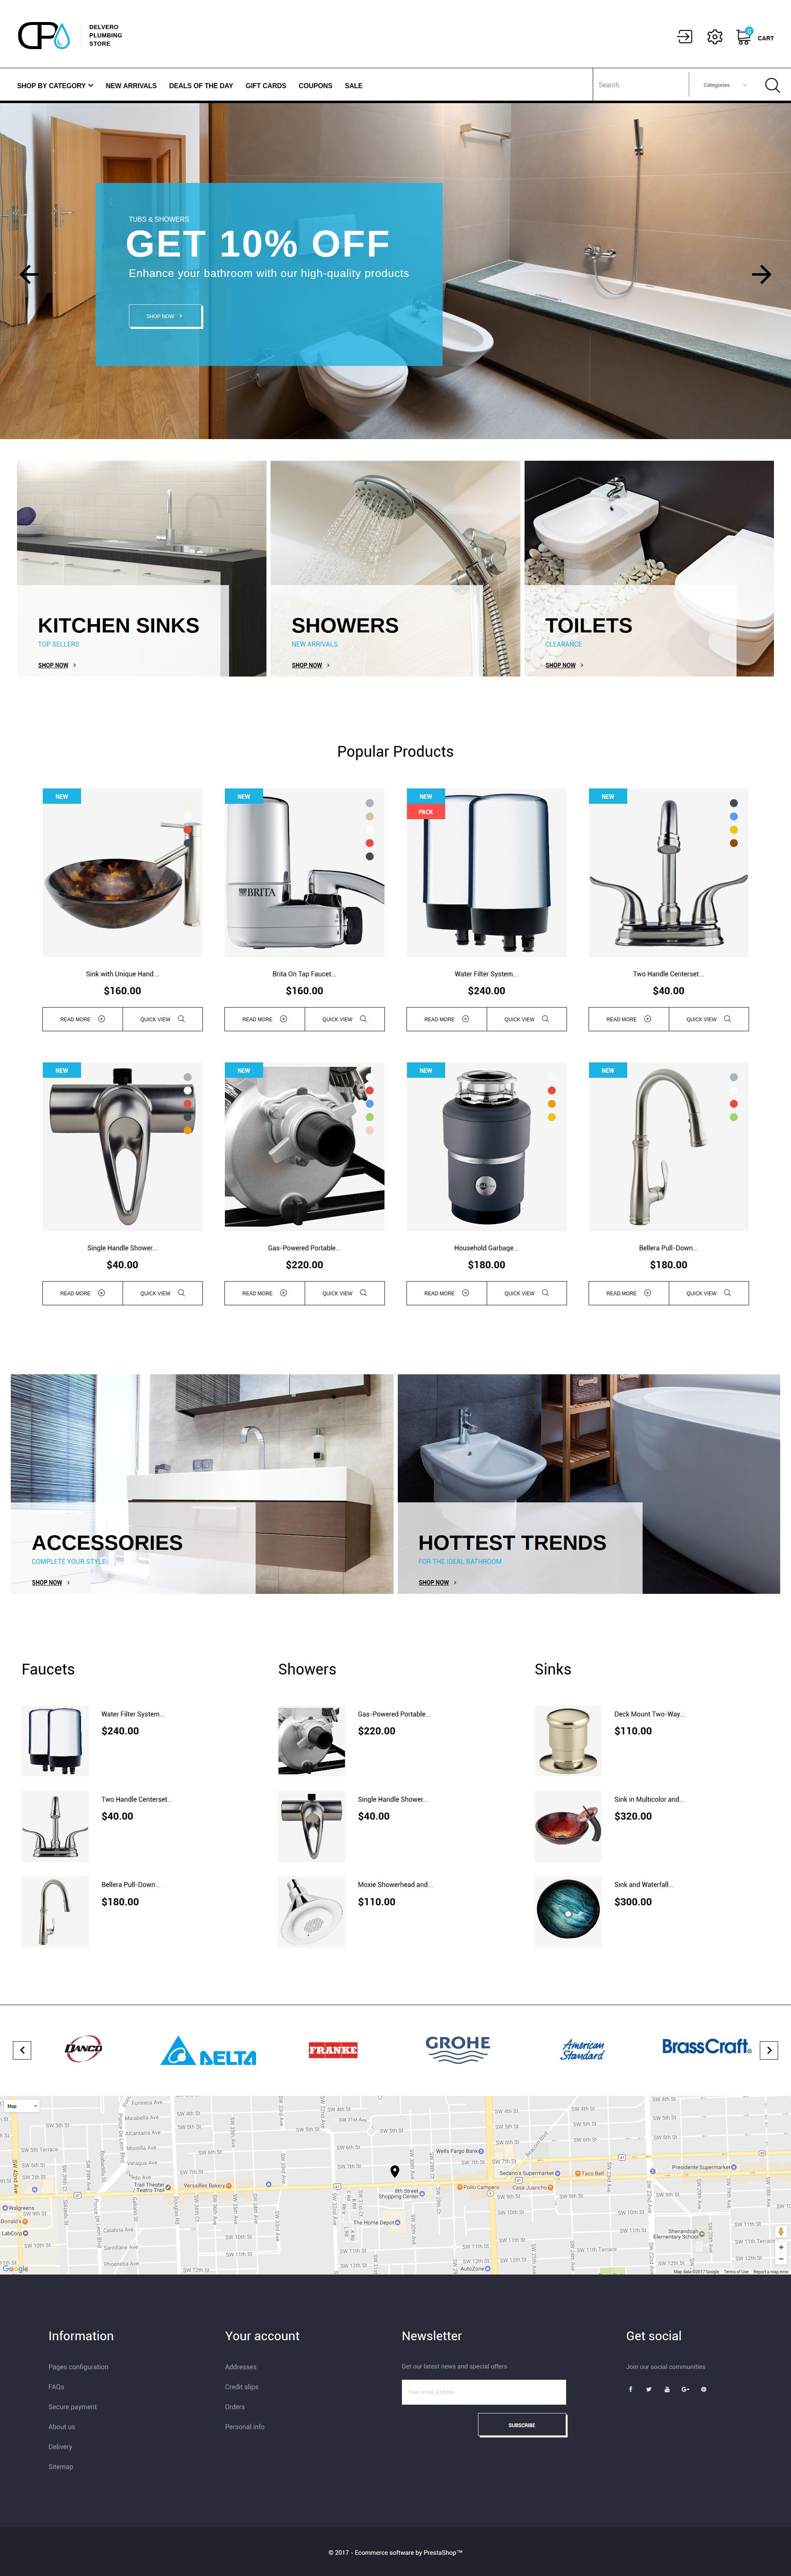 Website Design Template 64022 - store supplies company drain heating system installation preventive maintenance repair spanner tools sewer tap faucet sink employment staff master plumber tips hint standard offer experience special expert